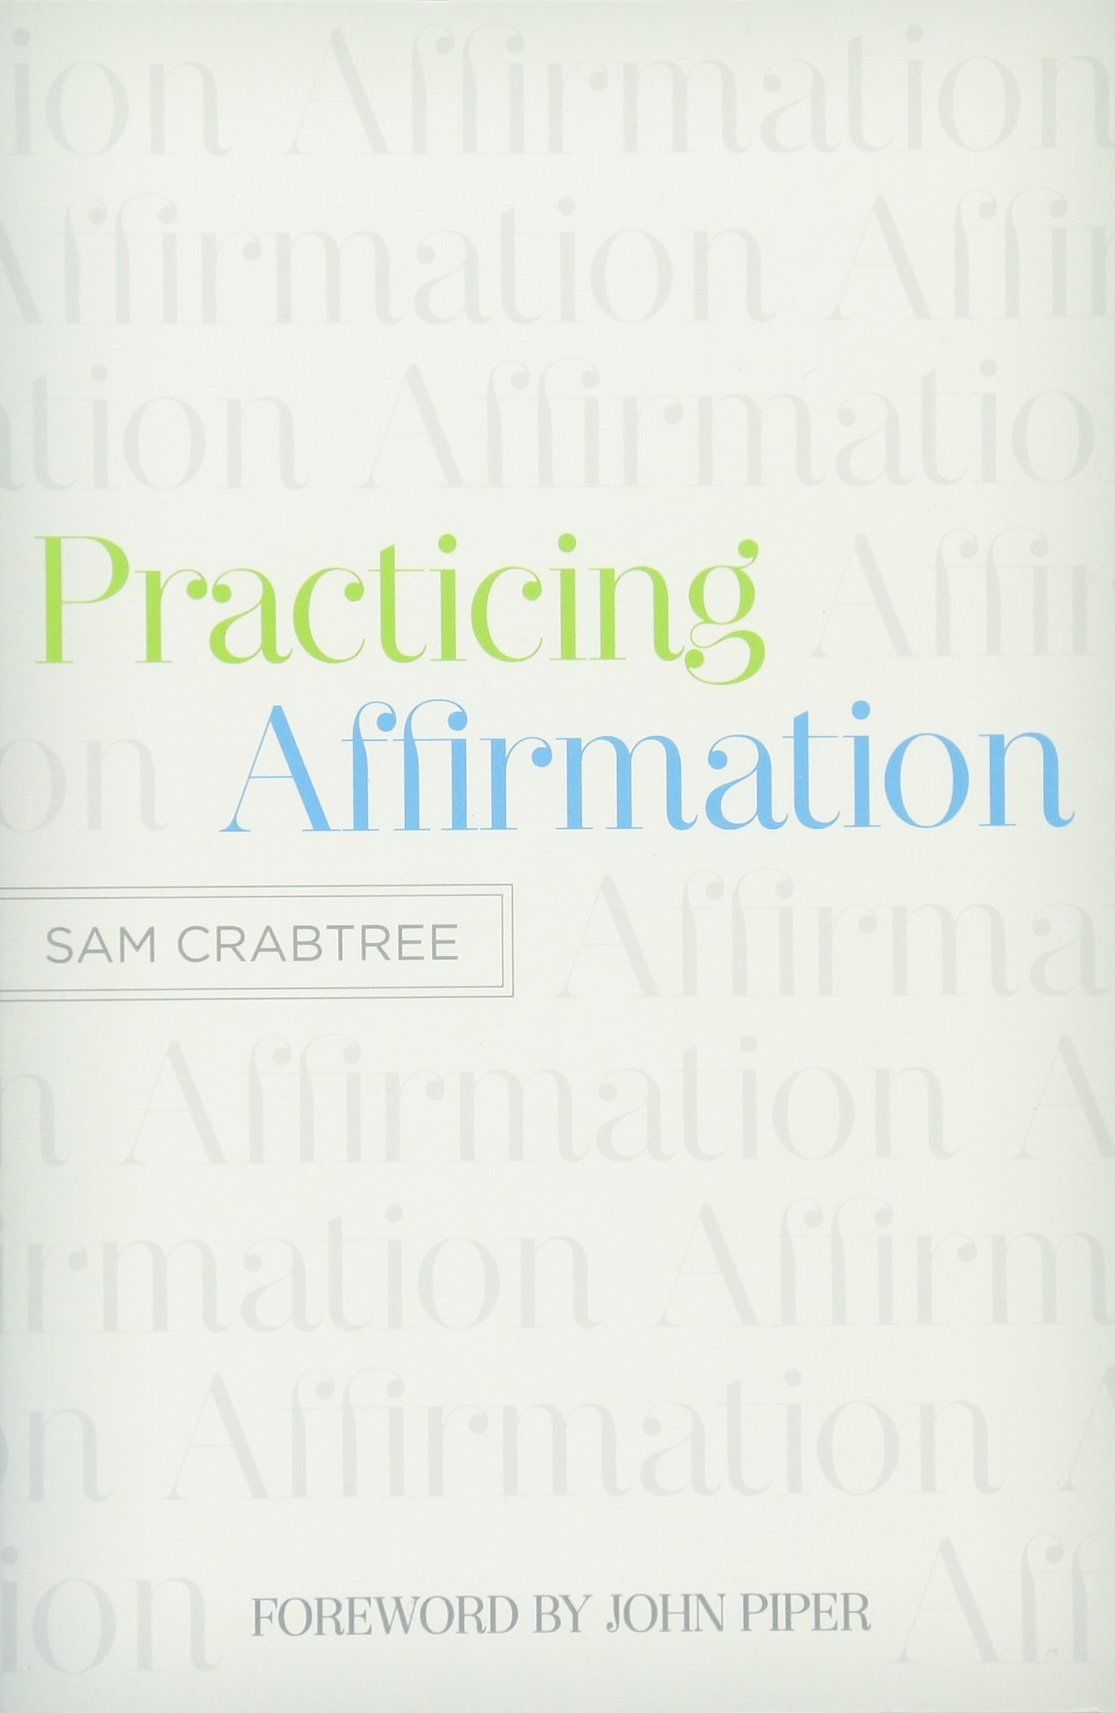 Practicing affirmation god centered praise of those who are not god practicing affirmation god centered praise of those who are not god sam crabtree john piper 9781433522437 amazon books thecheapjerseys Gallery